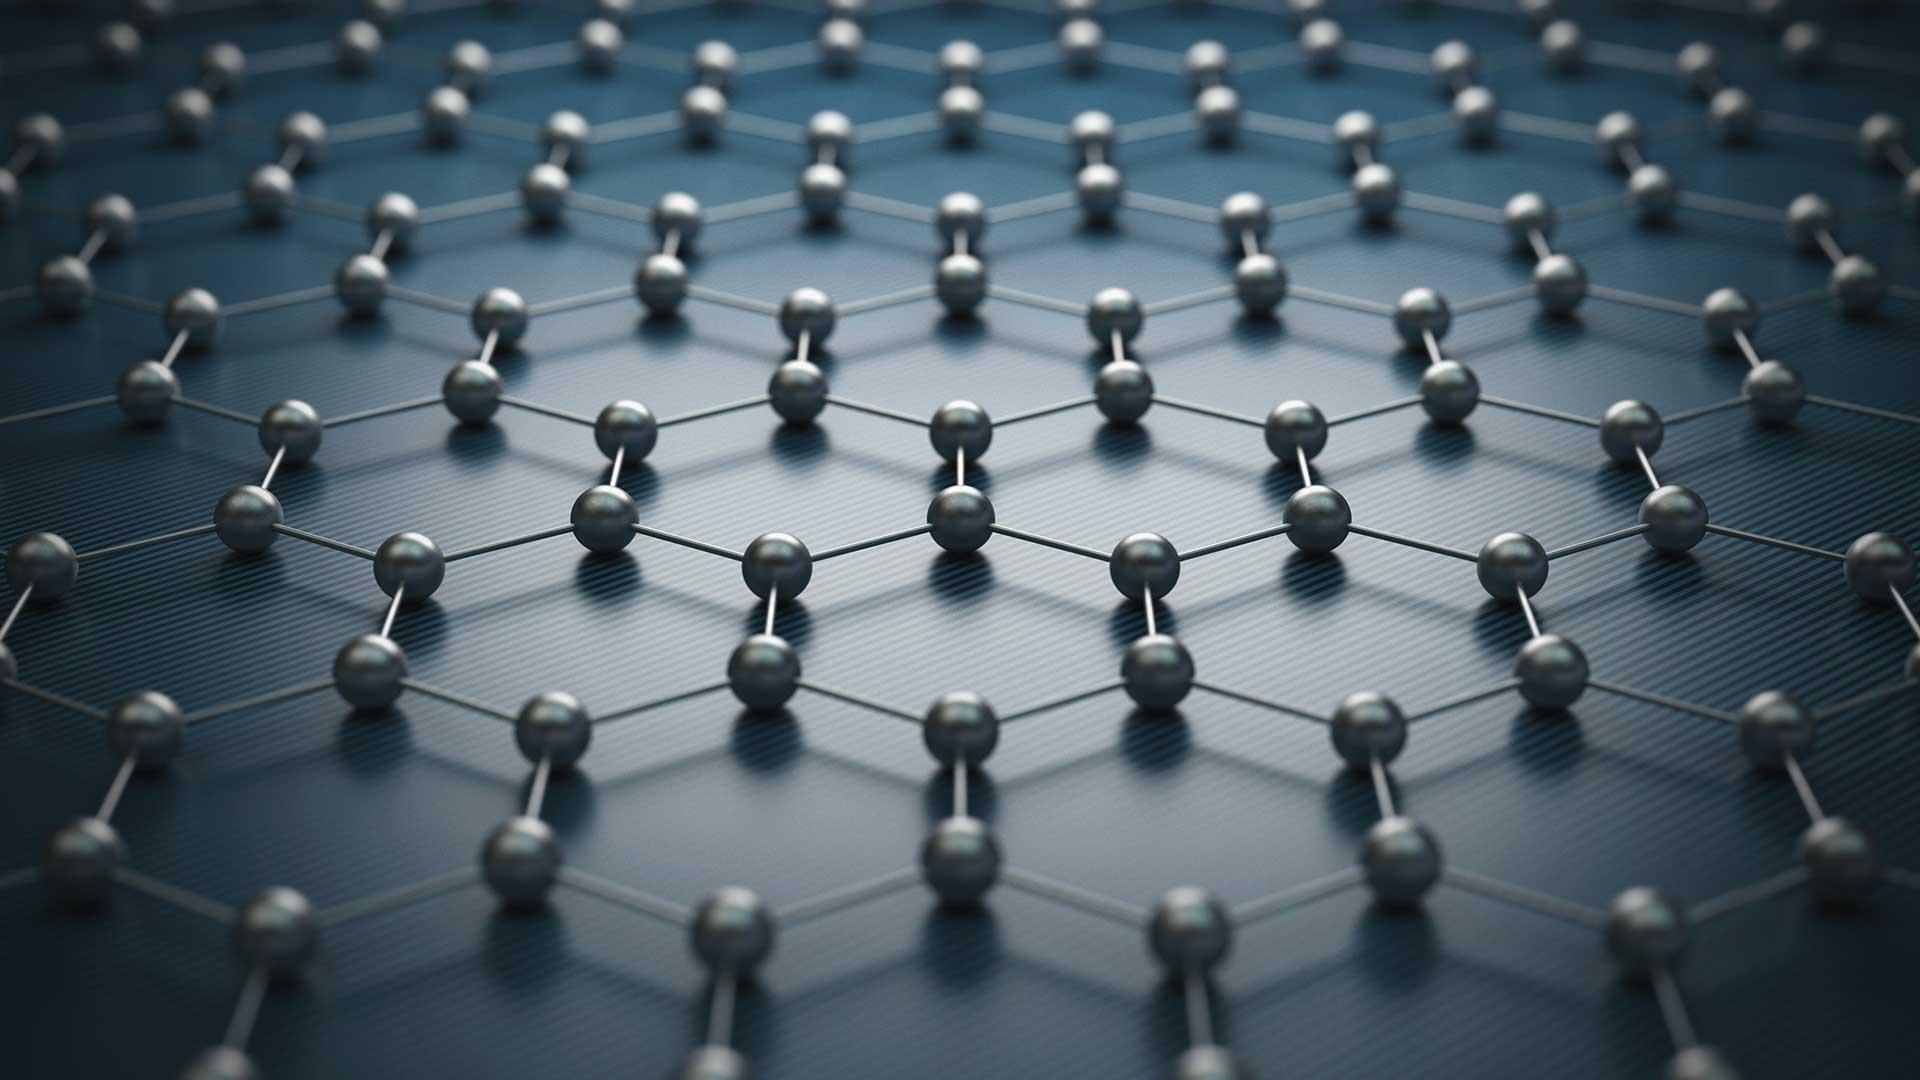 Graphene and Beyond: The Astonishing Properties and Promise of 2D Materials